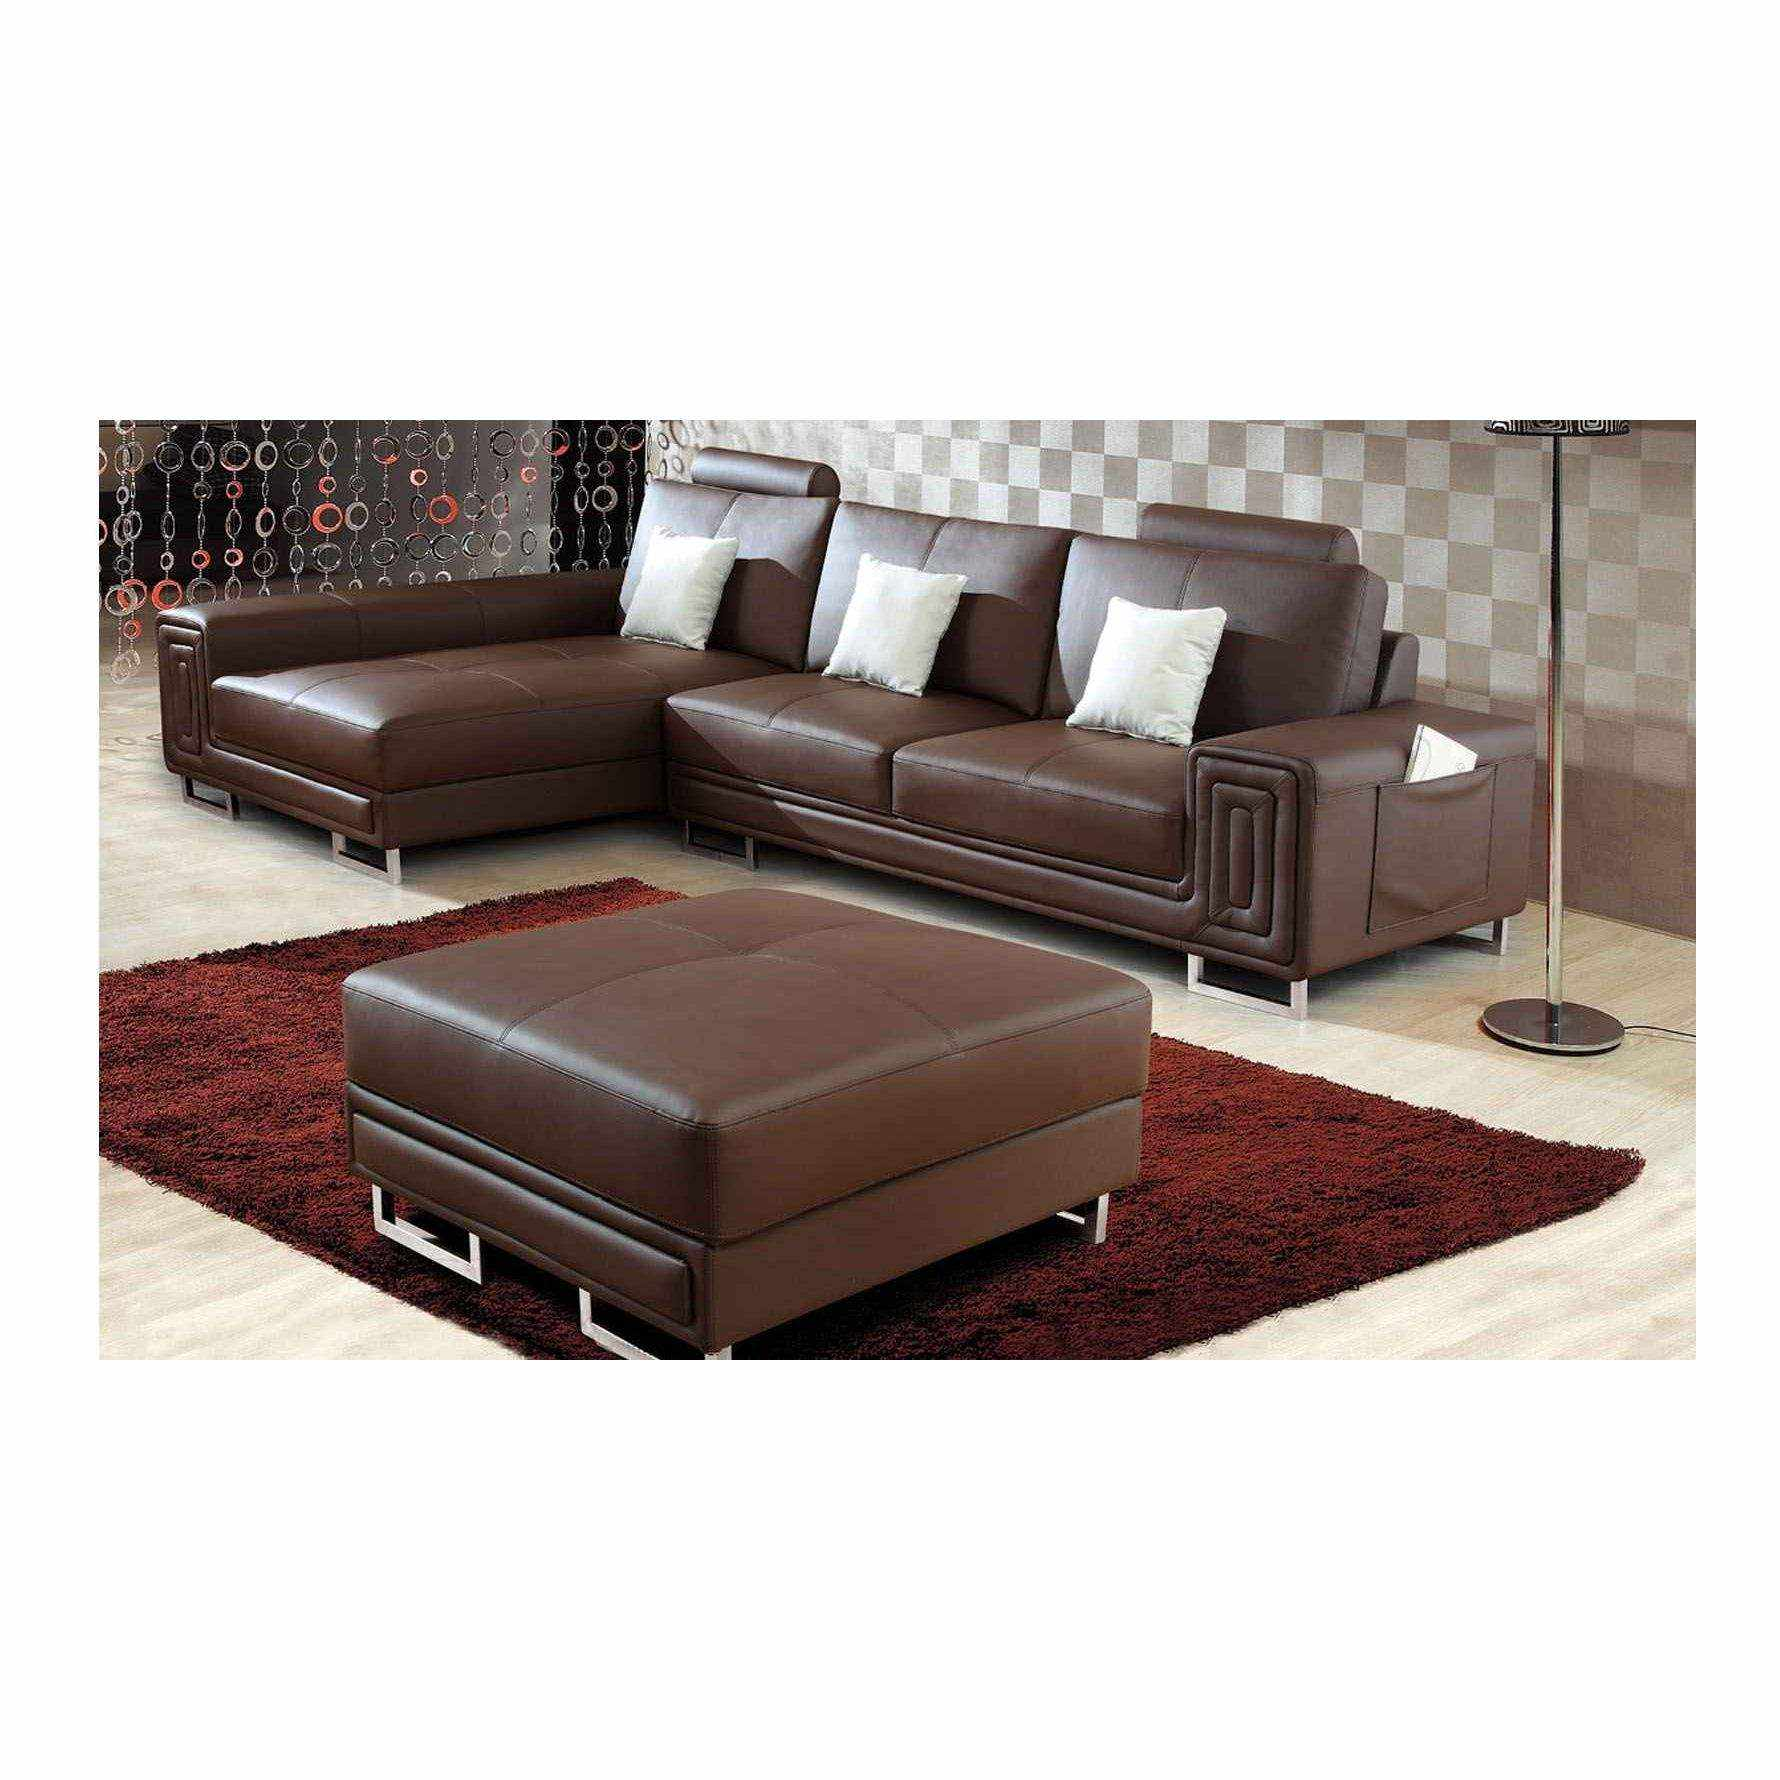 Deco in paris canape cuir d angle marron avec pouf for Canape cuir paris